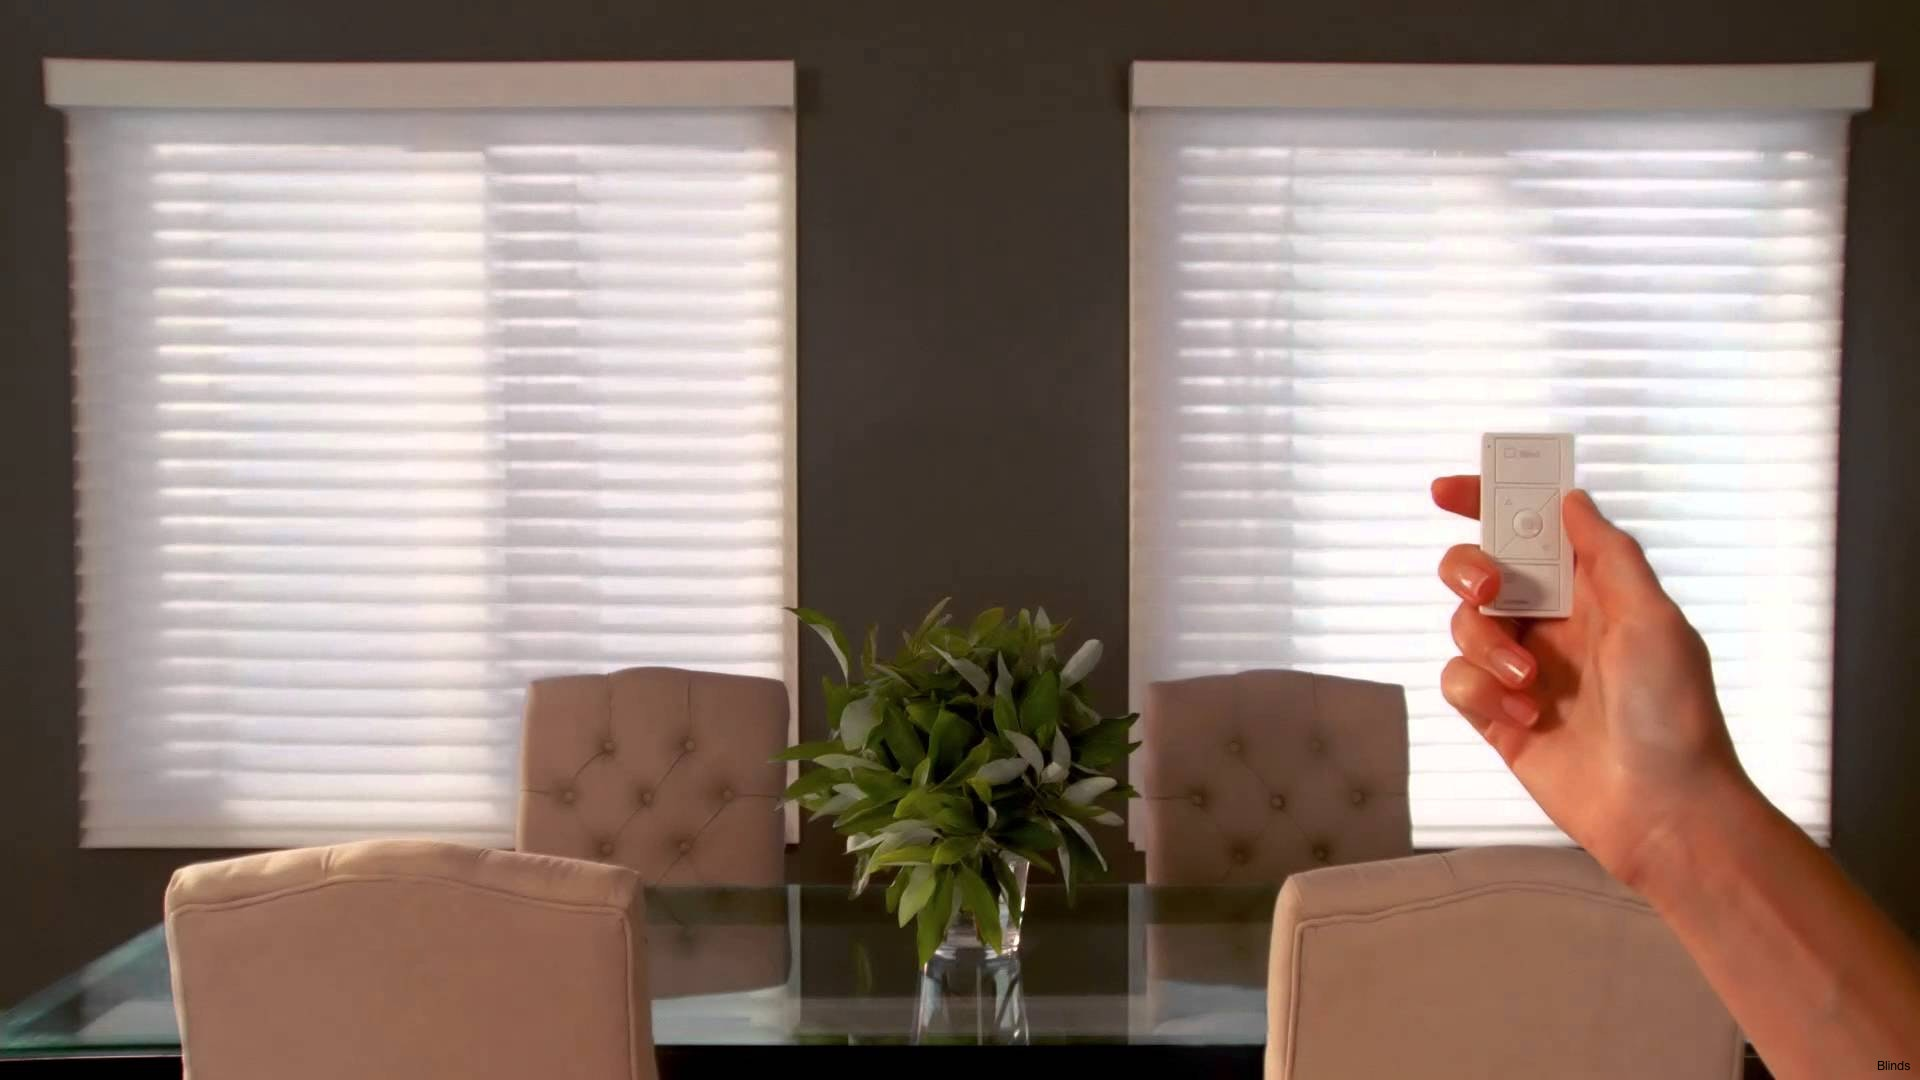 Make Life Easier With Remote Control Curtains | Smart Home Automation and  Commercial Automation Company - HDH TECH